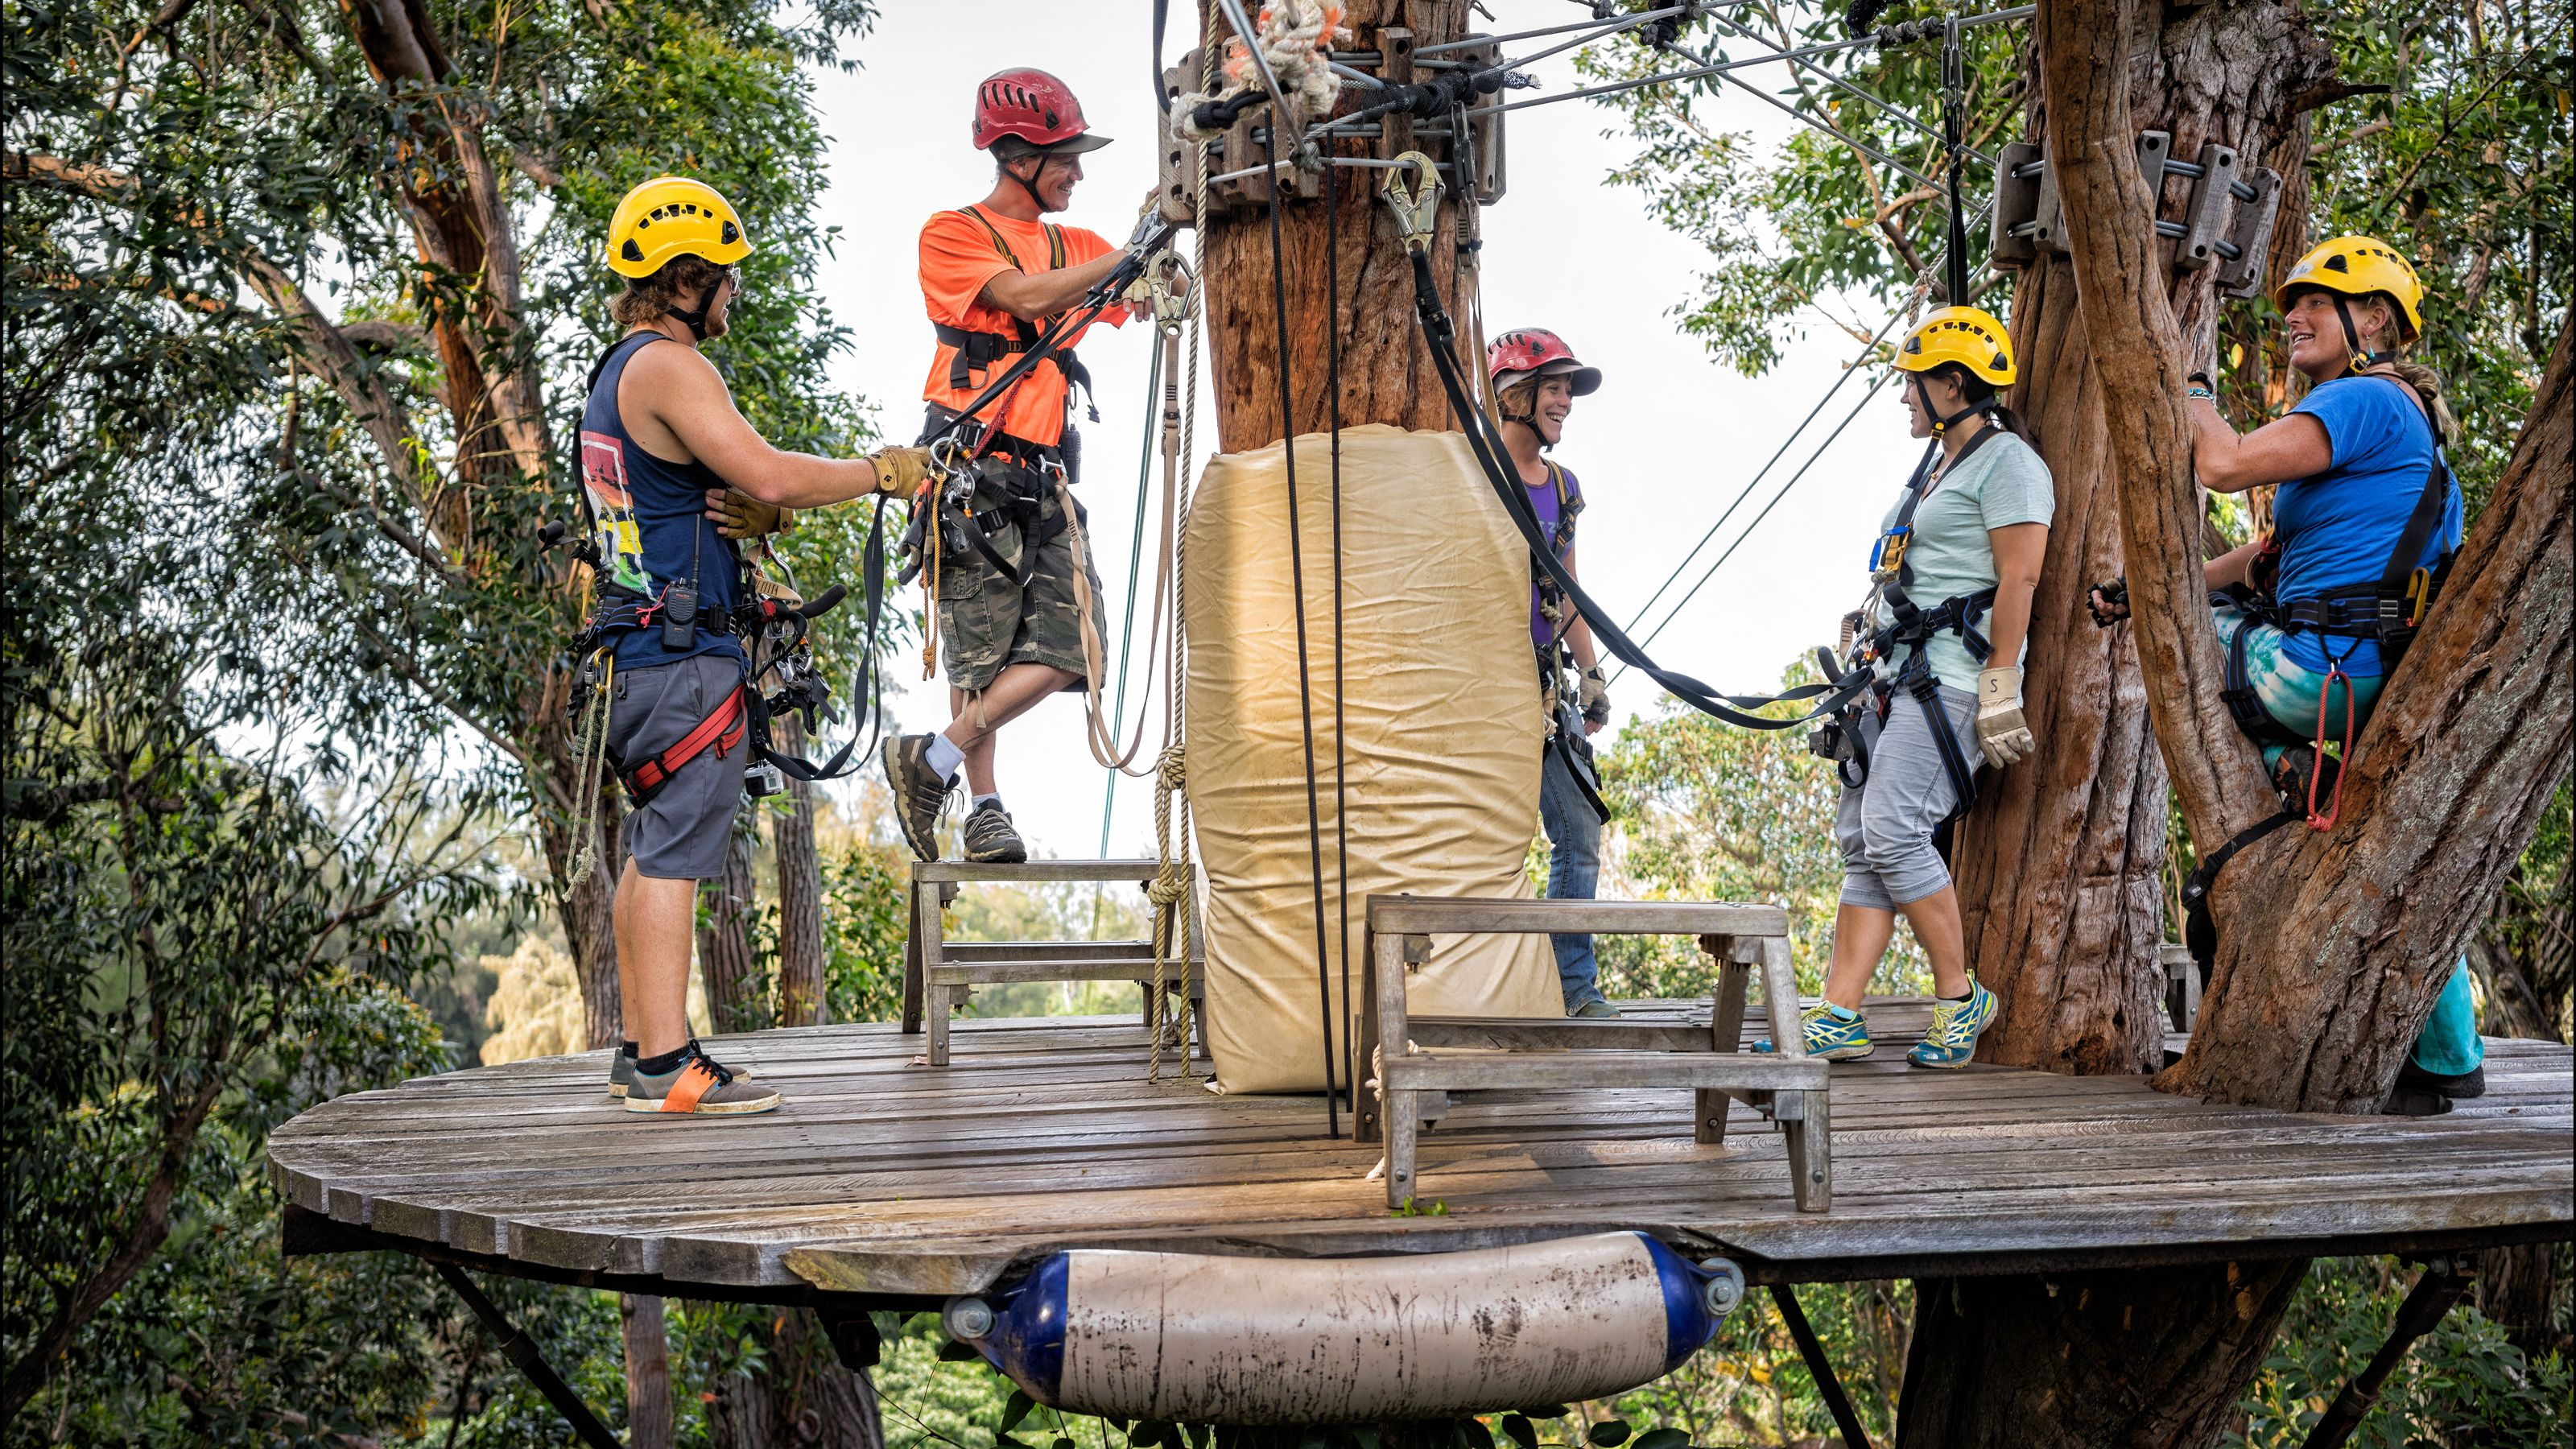 People standing on a platform waiting for their turn to zipline in Hawaii